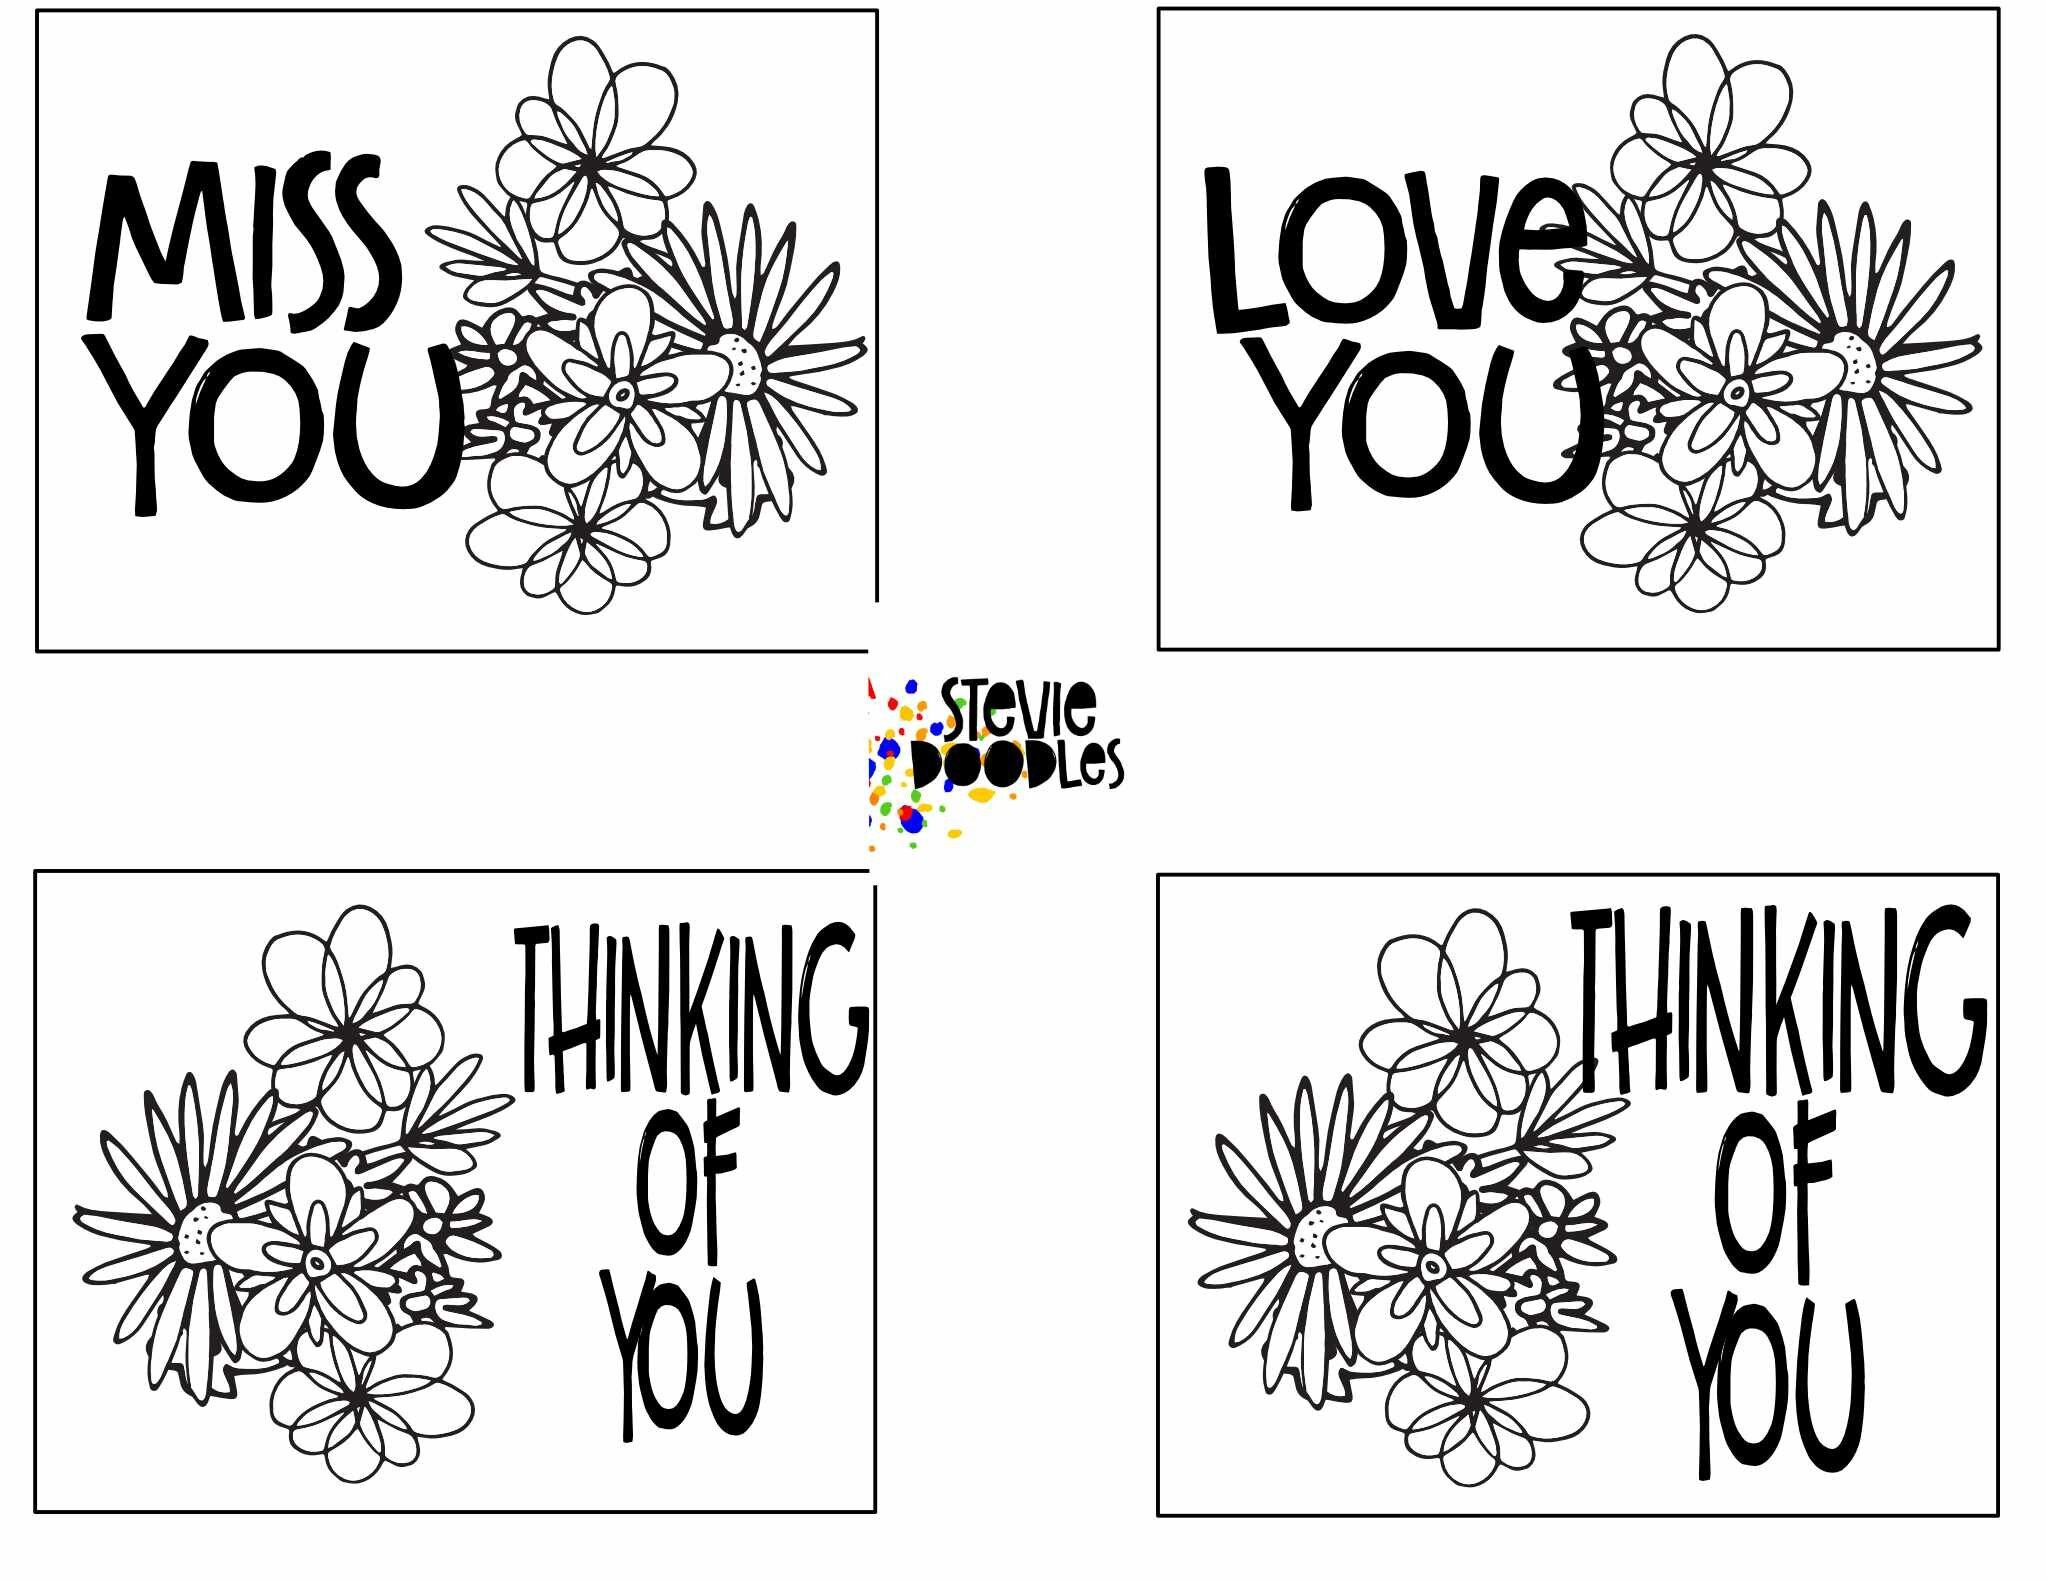 Thinking Of You 7 Pages Of Cards To Print And Color Stevie Doodles Free Printable Greeting Cards Printable Coloring Cards Free Cards To Print